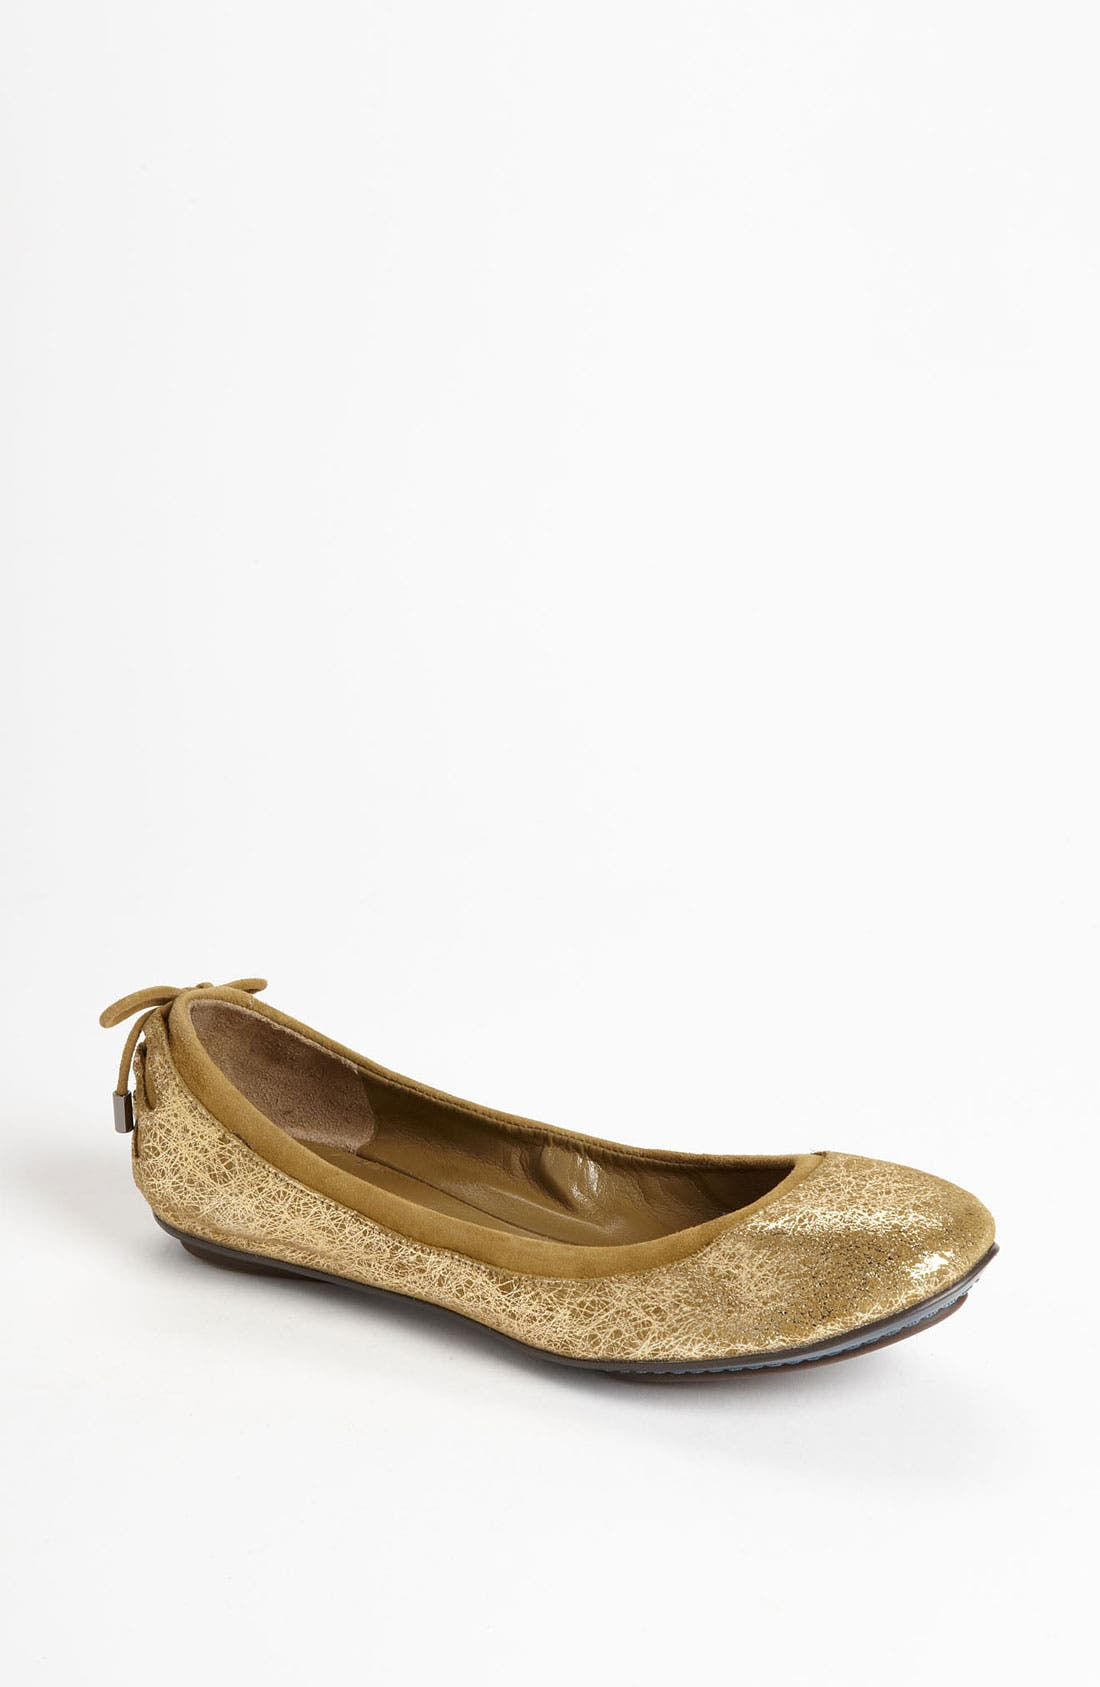 ,                             Maria Sharapova by Cole Haan 'Air Bacara' Flat,                             Main thumbnail 56, color,                             301